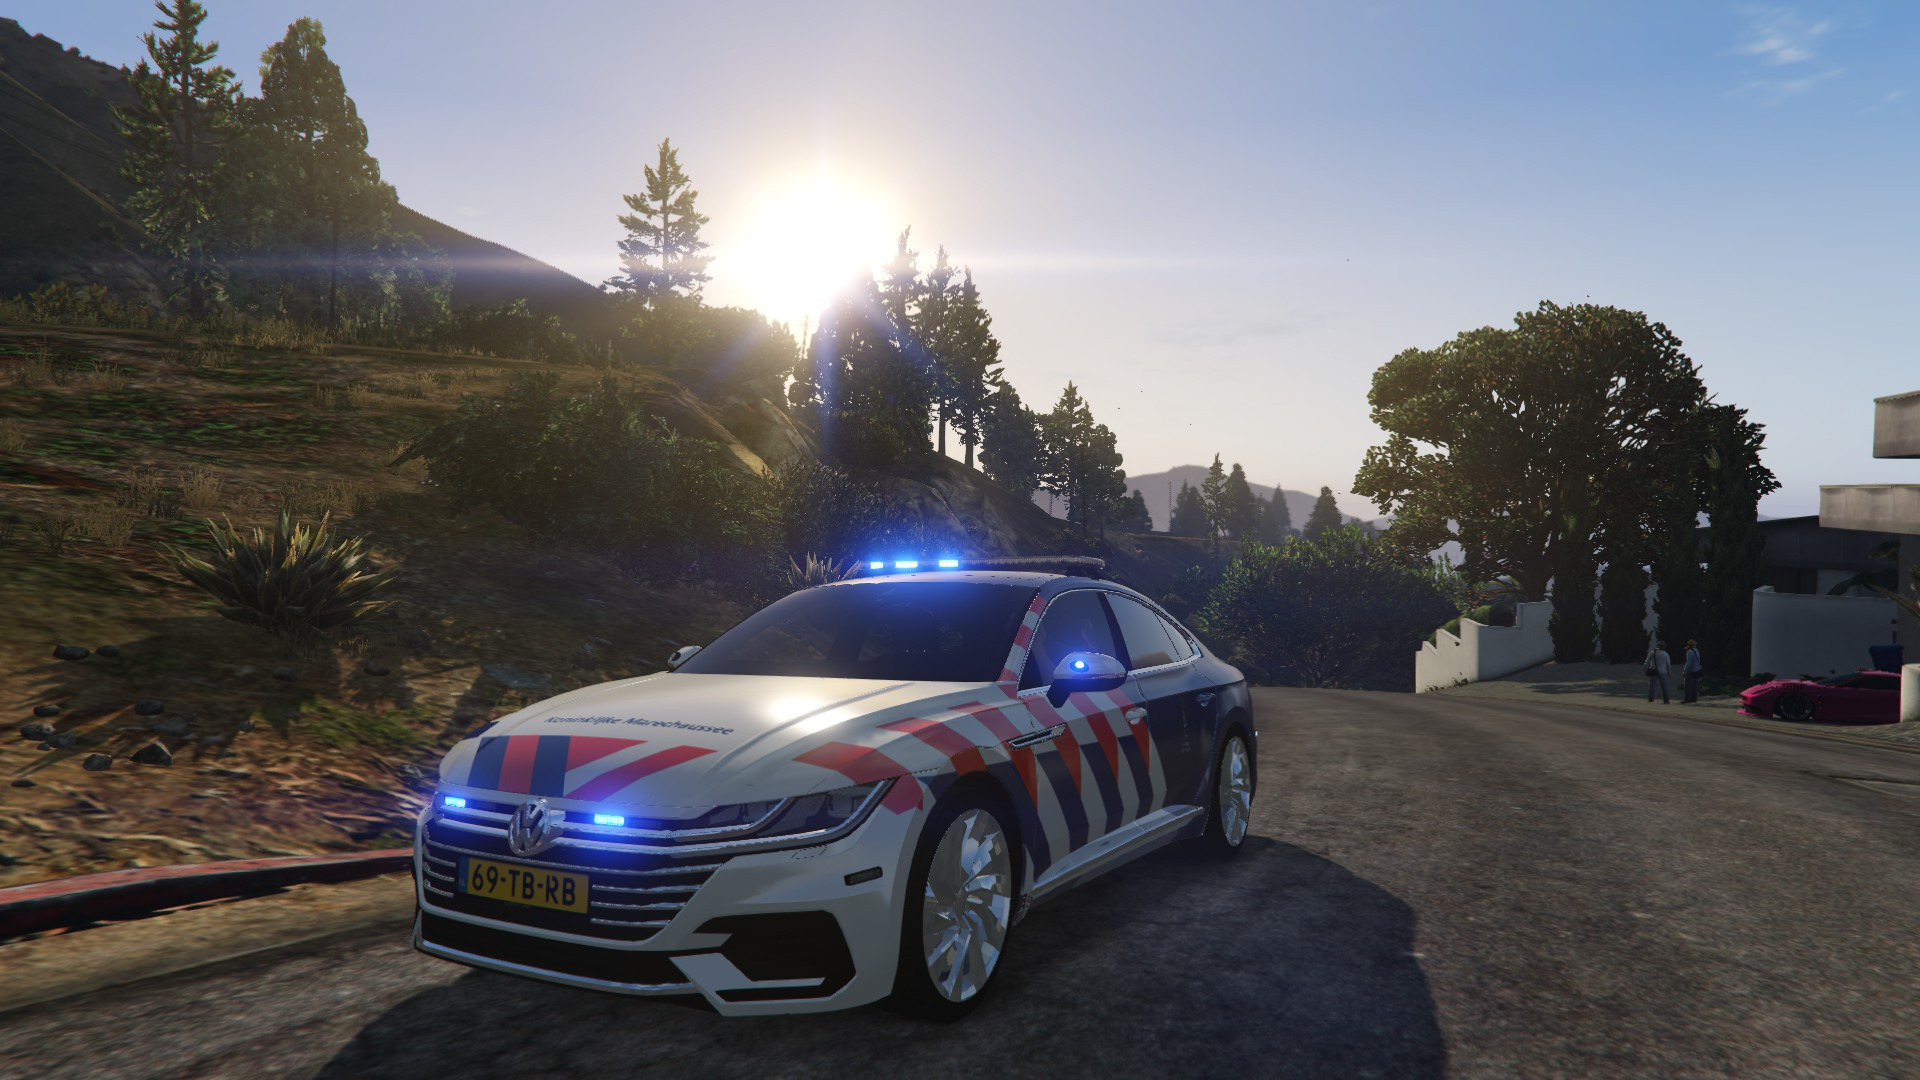 vw arteon kmar dutch police nederlandse politie gta5. Black Bedroom Furniture Sets. Home Design Ideas